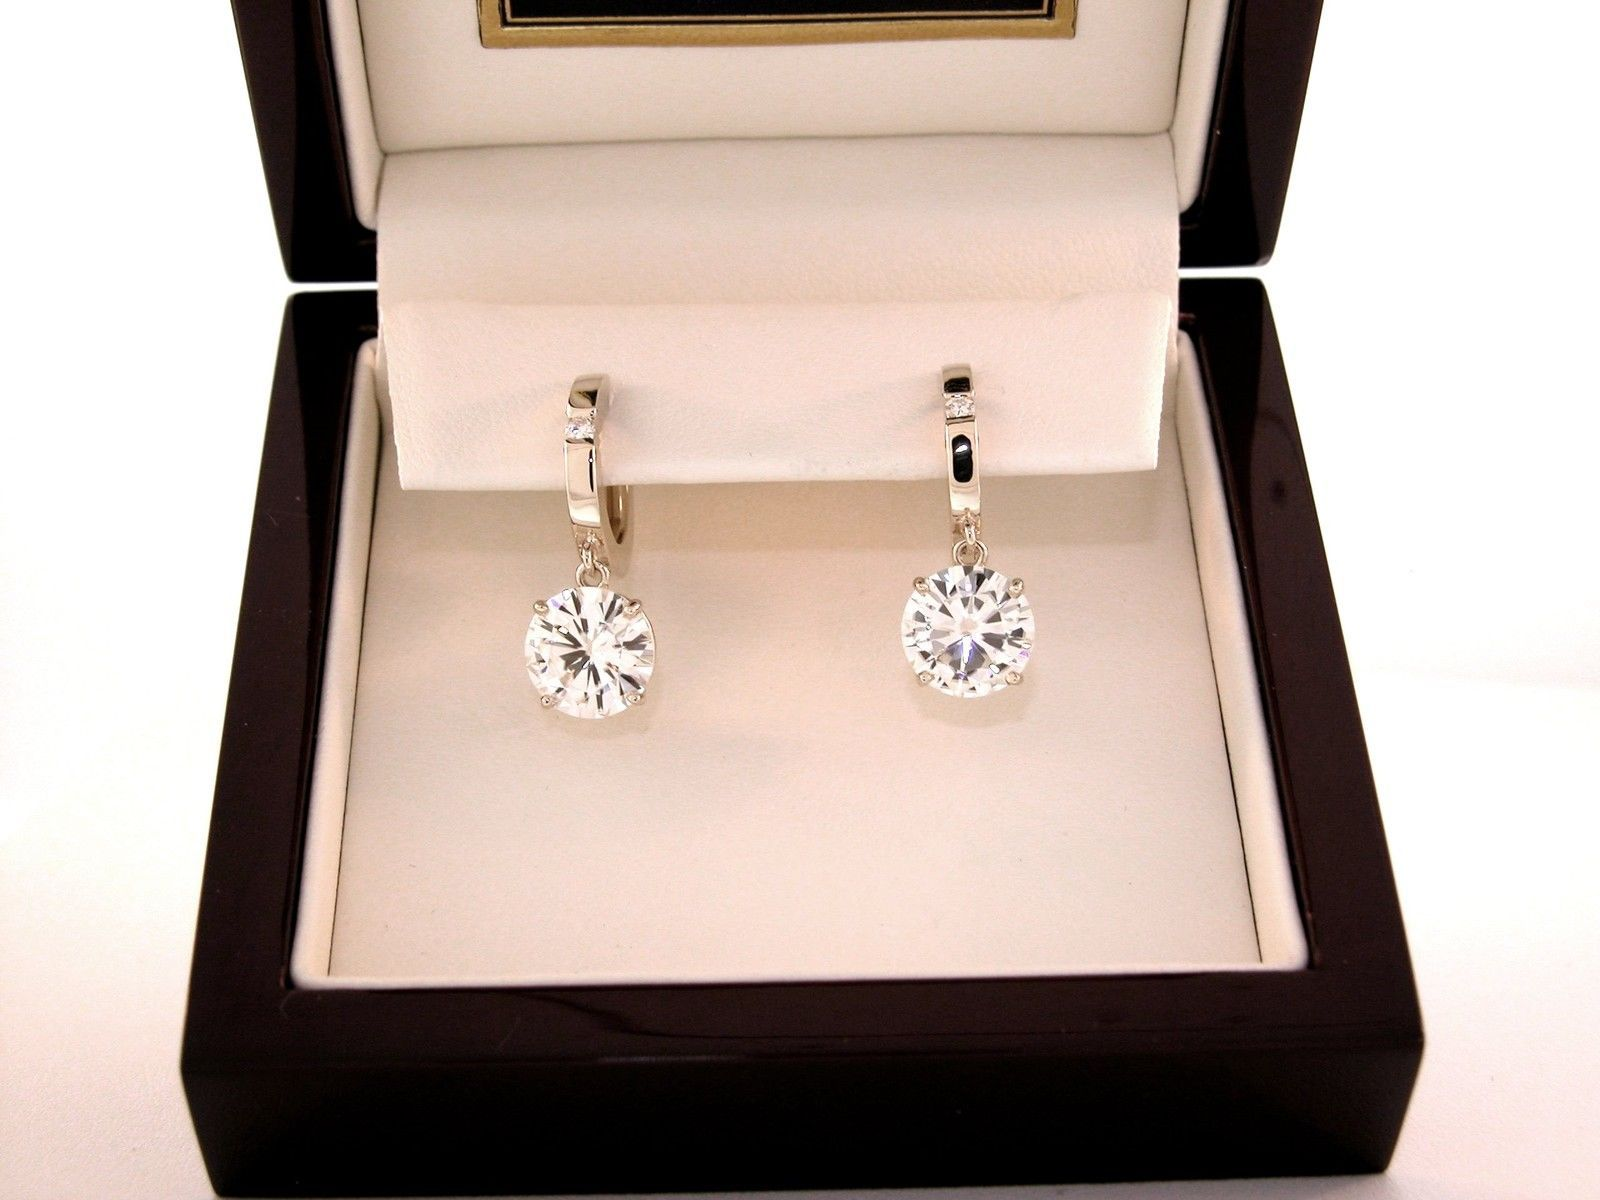 6 Ct Round Moissanite With Accent Hinge Hoop 4 Prong Dangle Earrings